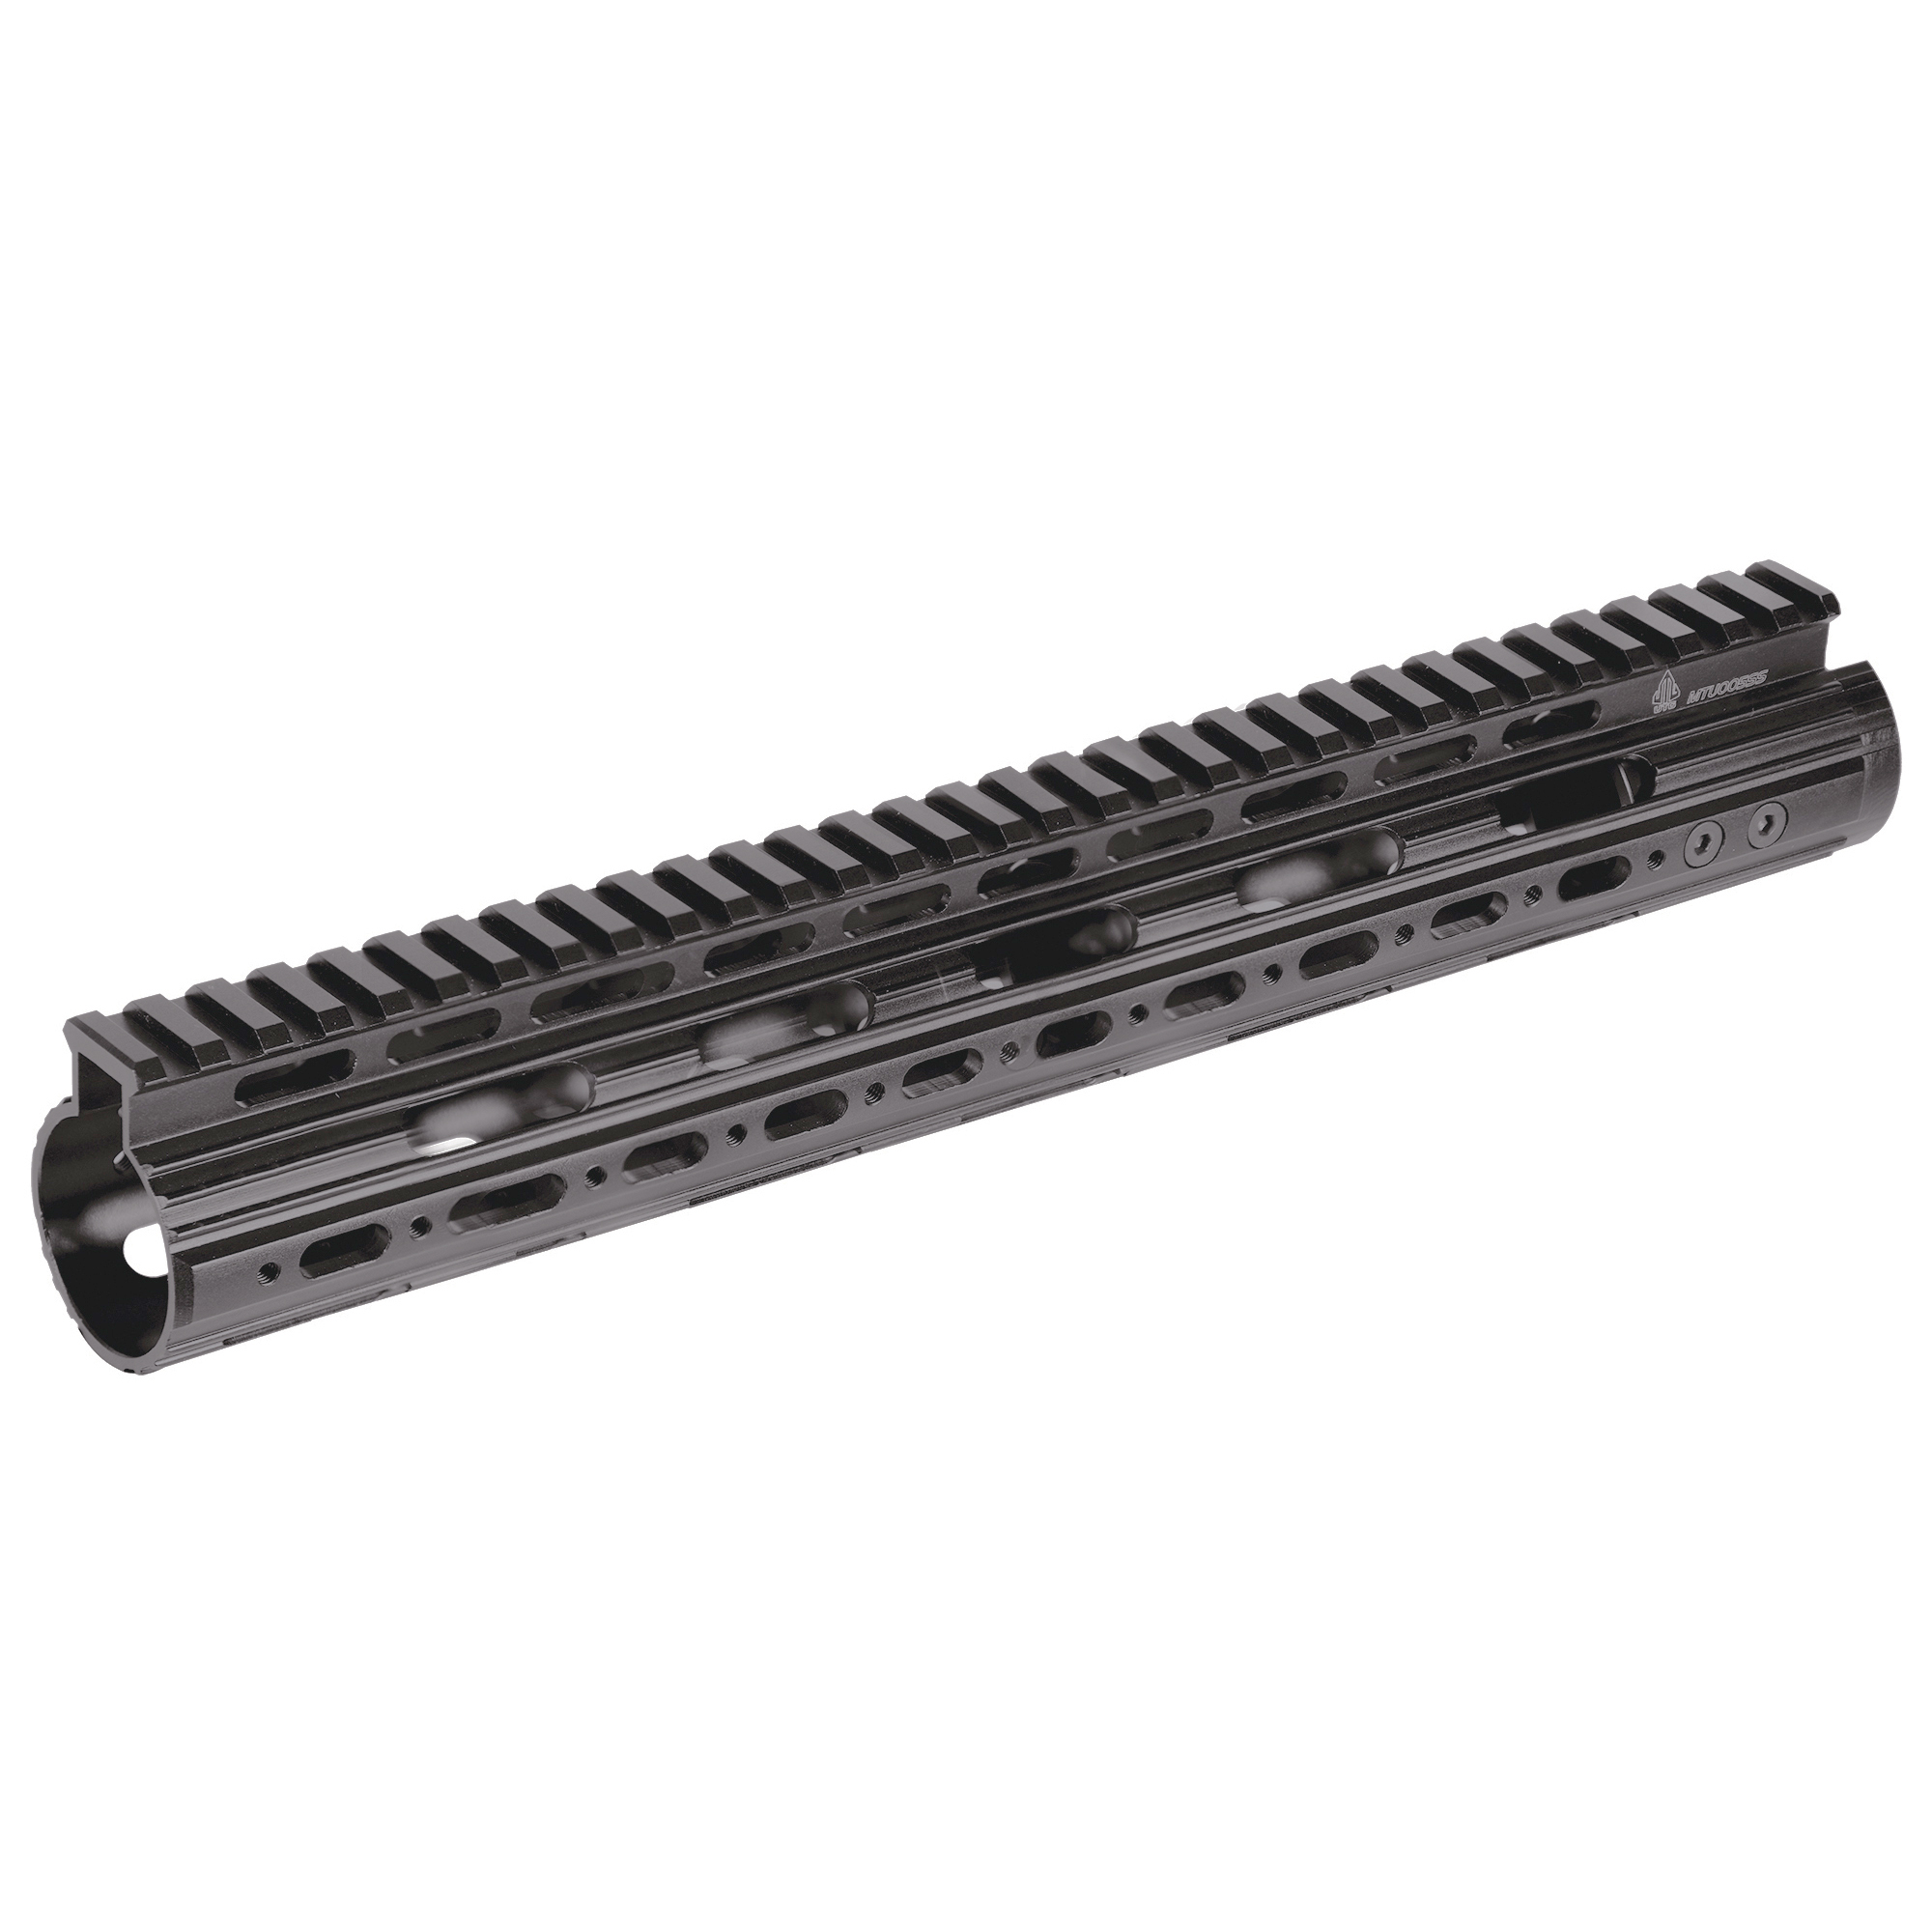 "UTG PRO AR15 Rifle Length 13"" Super Slim Free Float Handguard"